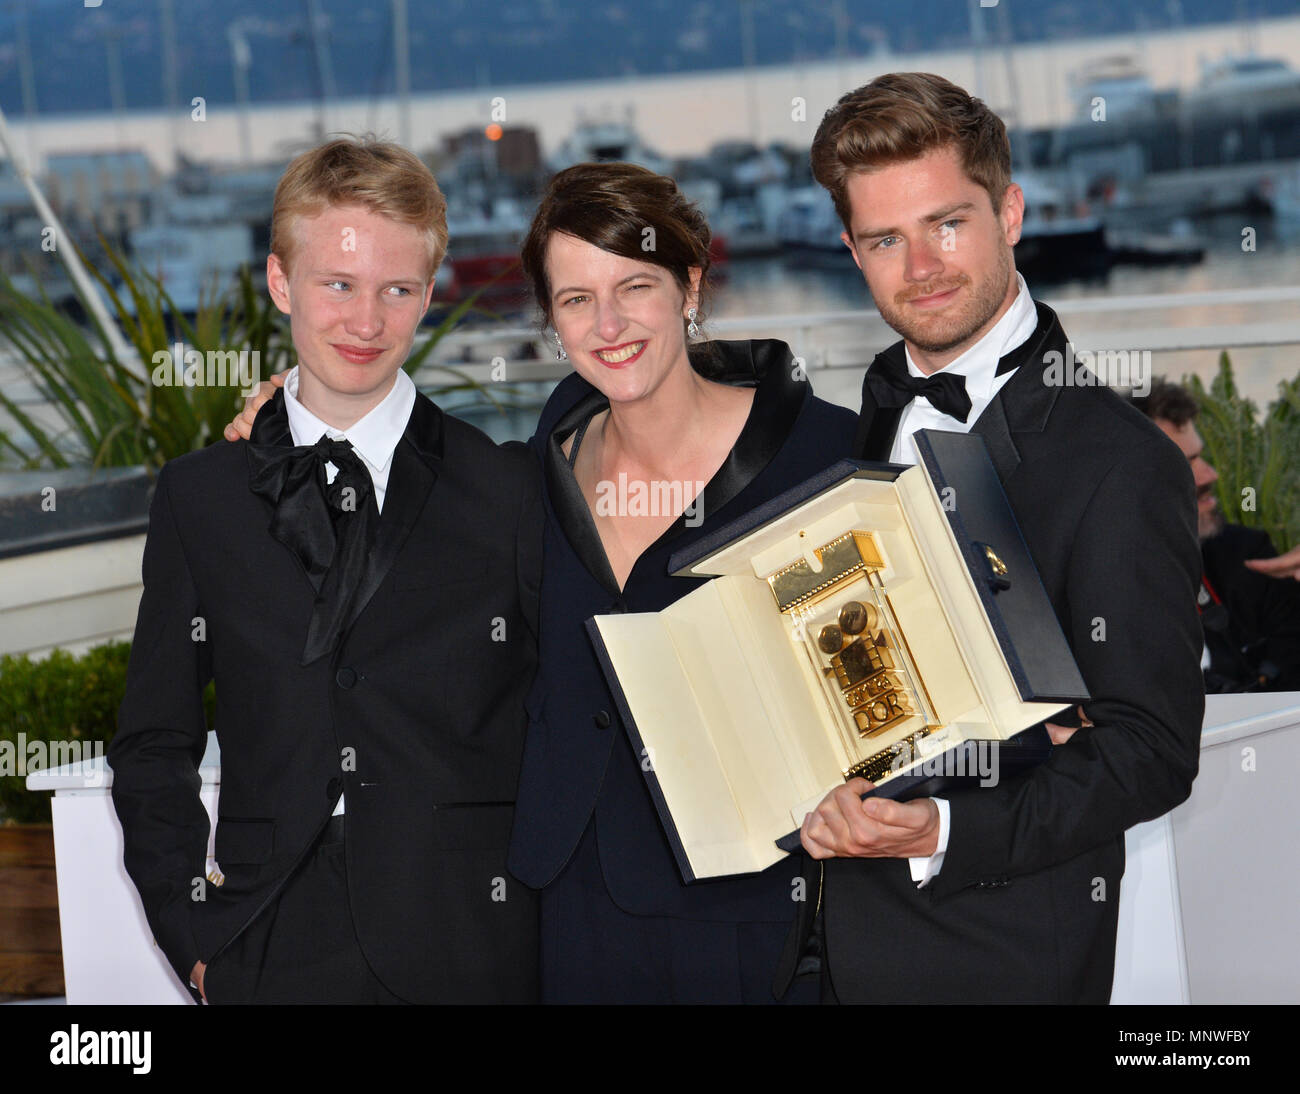 Ursula Polster Design.Cannes France May 19 2018 Victor Polster Lukas Dhont